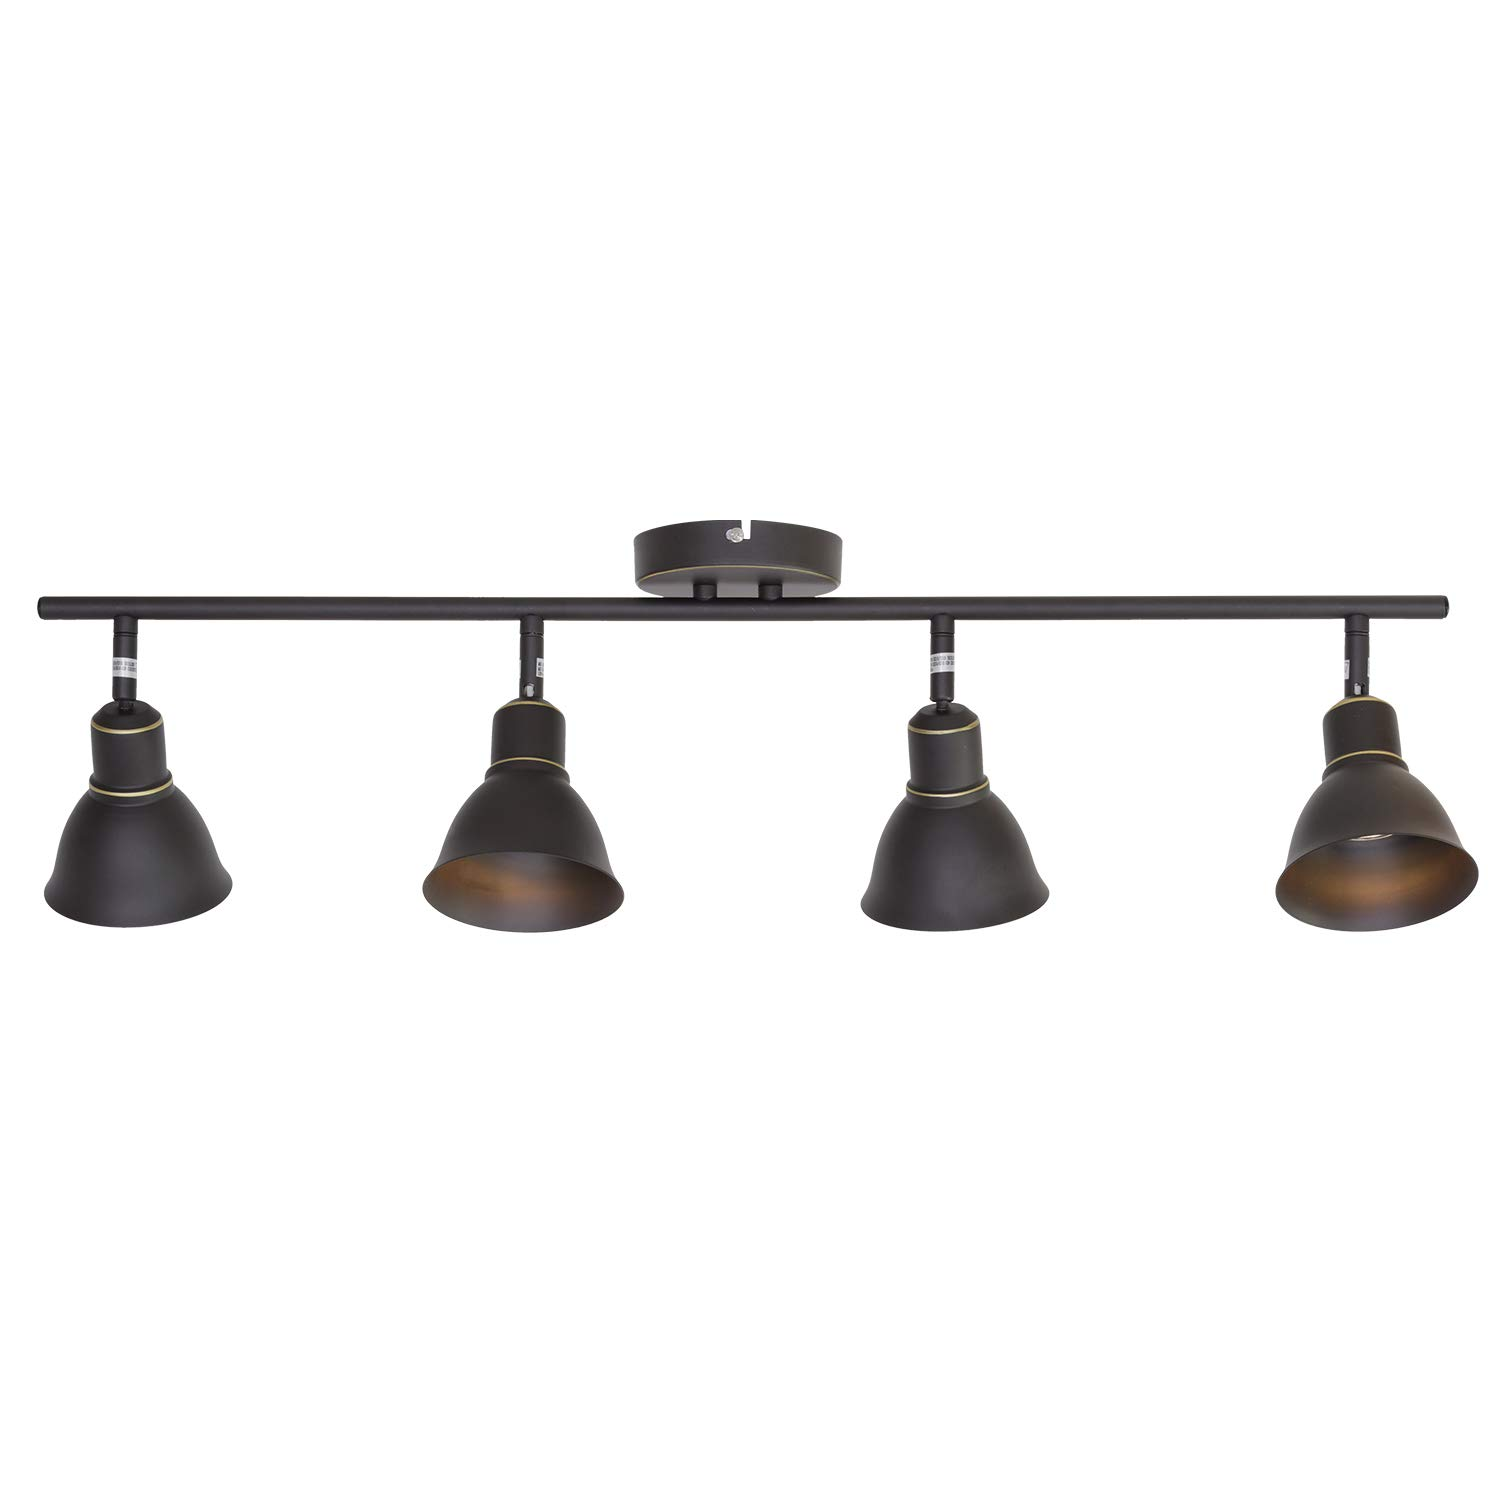 Kitchen track lighting fixtures Kitchen Condo Melucee 4light Ceiling Spotlights Track Lighting Kit Kitchen Track Lighting Fixtures Ceiling 35w Gu10 Base Halogen Bulbs Included Oil Rubbed Bronze Amazoncom Amazoncom Melucee 4light Ceiling Spotlights Track Lighting Kit